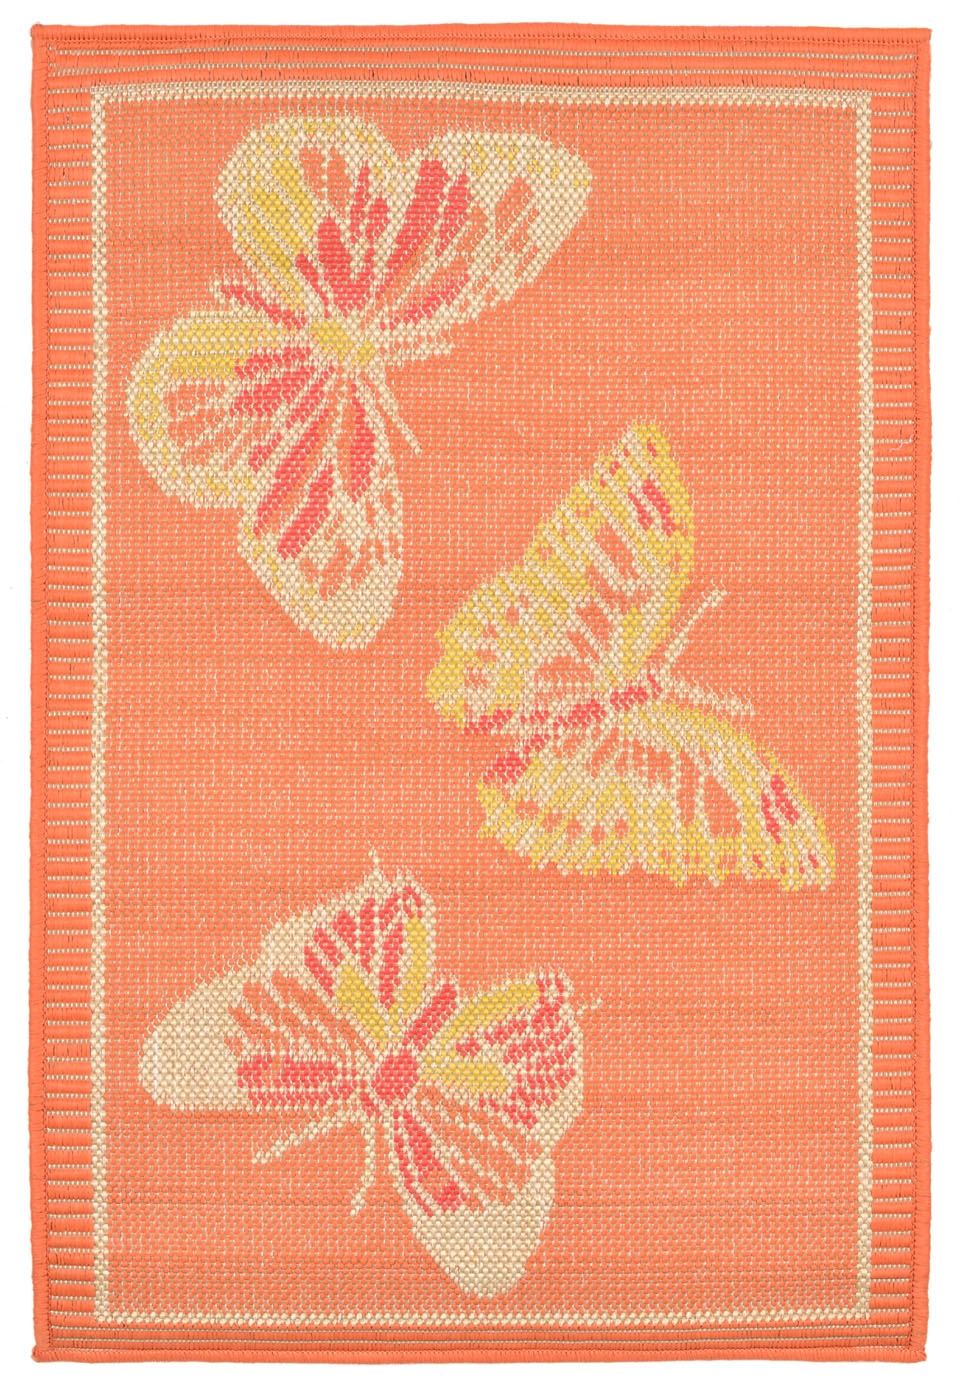 Transocean playa 1363 74 butterfly warm rug for Warm rugs